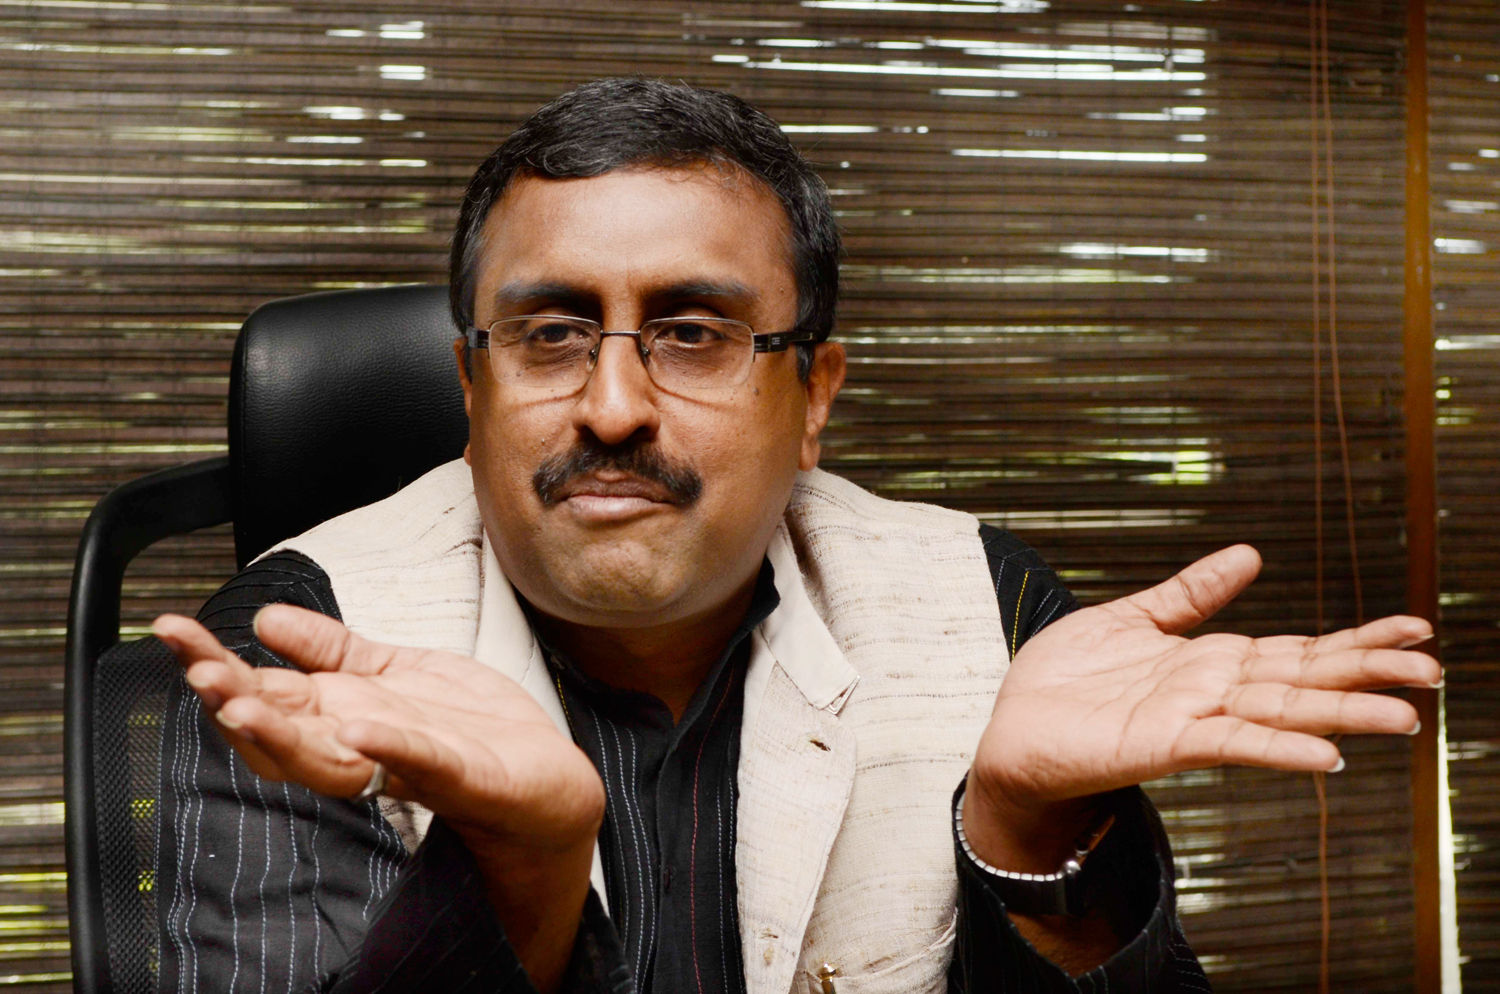 Ram Madhav, the BJP's point man in Jammu and Kashmir, was forced to withdraw a comment that insinuated a Pakistan hand had brought together political rivals Omar Abdullah and Mehbooba Mufti 24 hours ago to stake claim to power in the state.